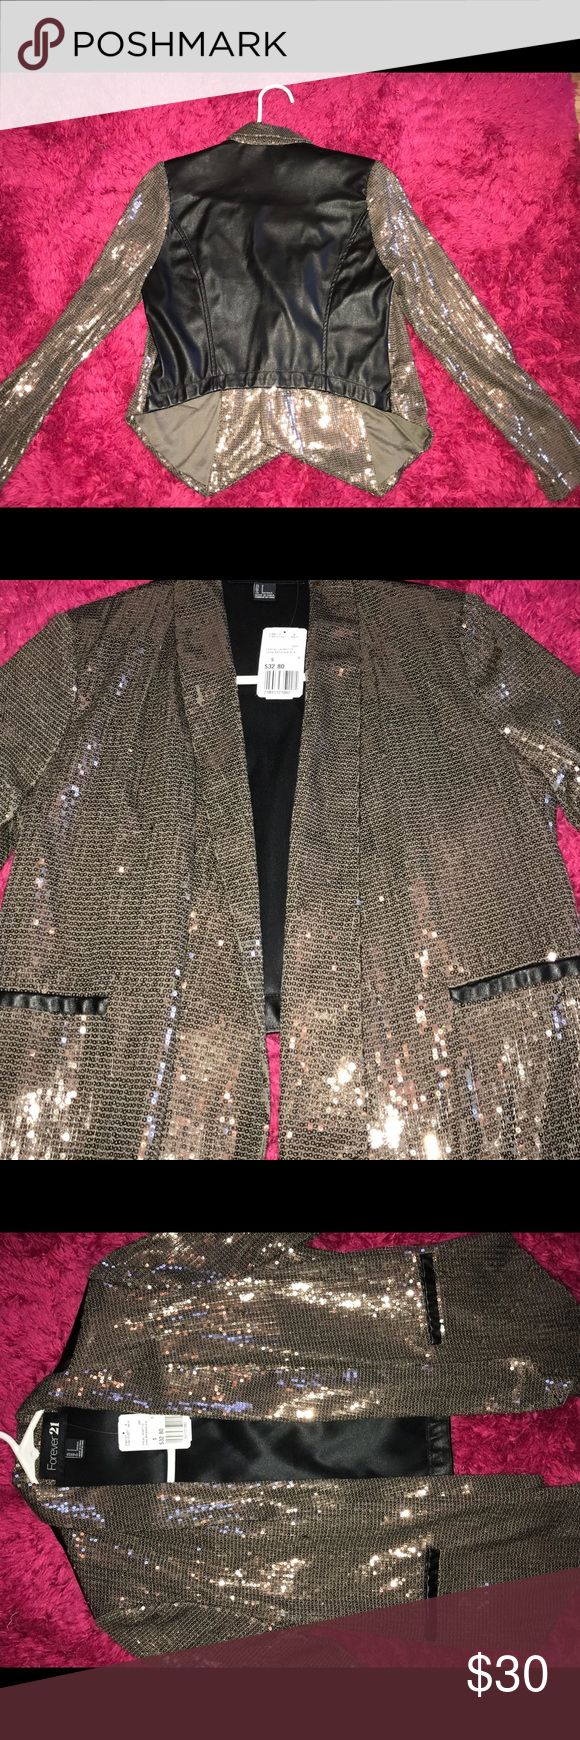 Sparkly Sequence jacket. Perfect for New Years. Thin jacket, will compliment well with a simple dress or a pair of jeans with a solid top. No need to accessorize because this jacket is an eye catcher. Throw on a pair on earrings and your good to go! Forever 21 Jackets & Coats